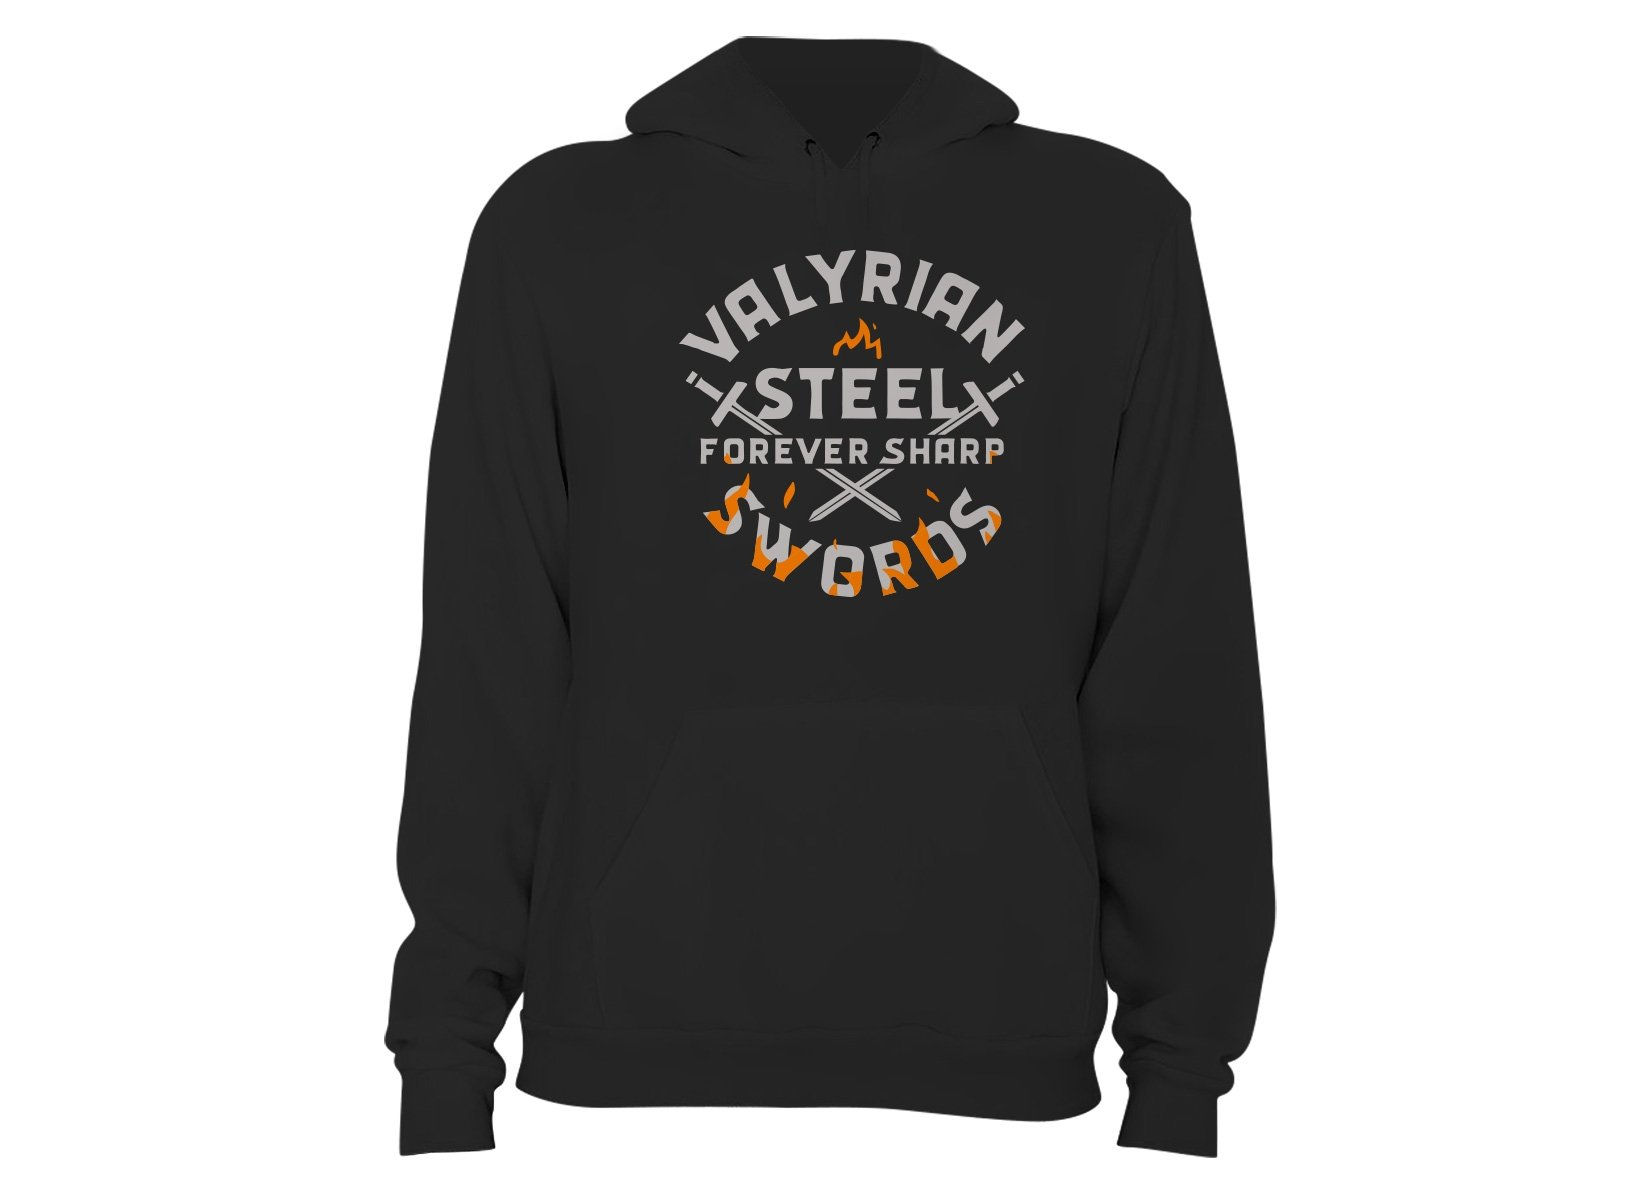 Valyrian Steel Swords on Hoodie